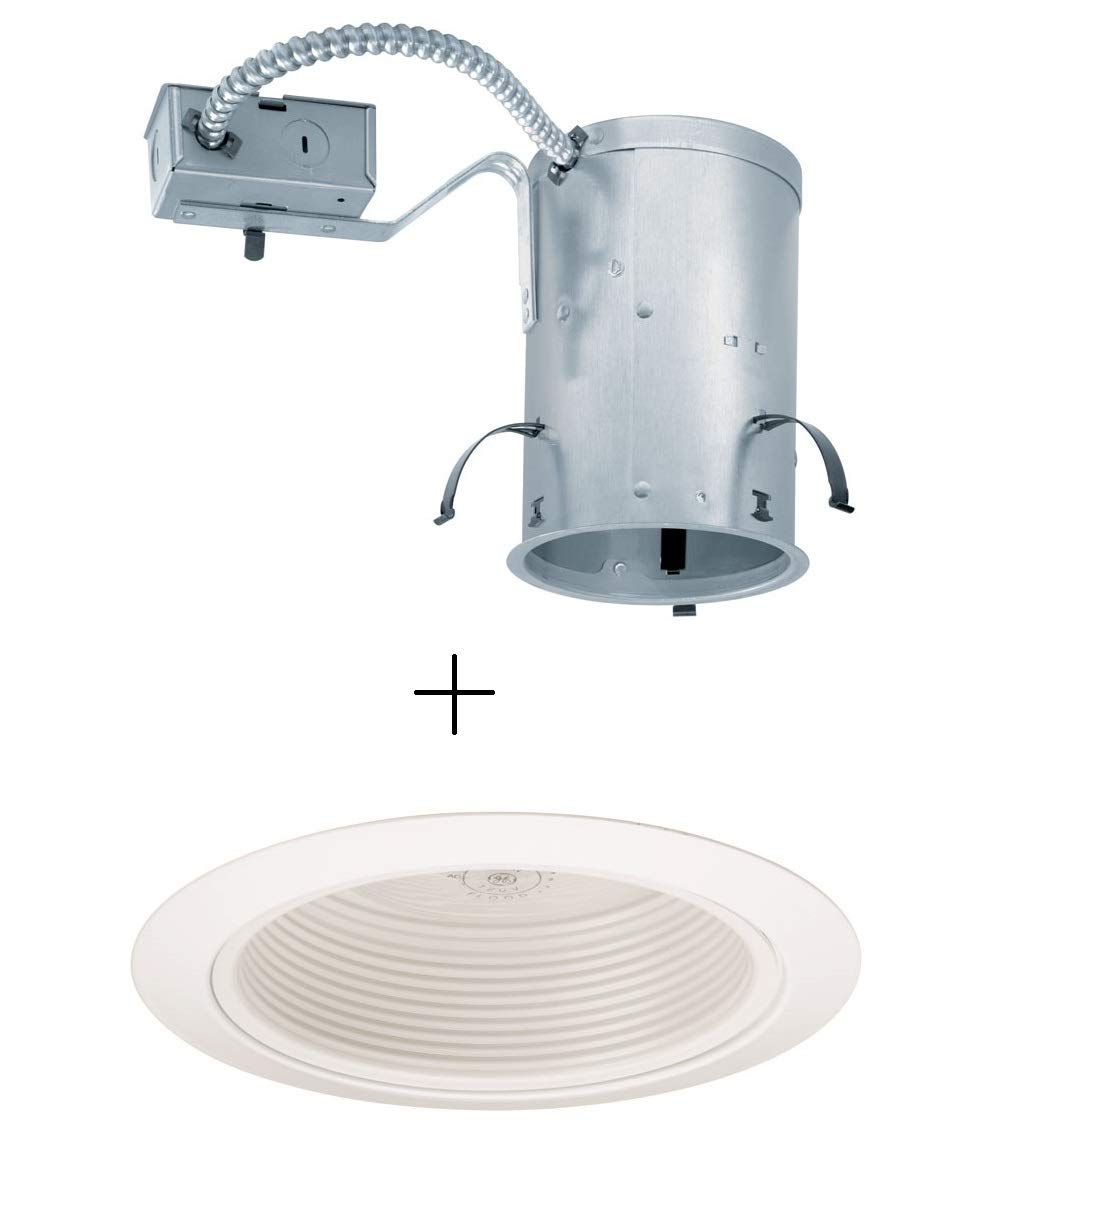 juno lighting ic20r 205 wwh 5 inch ic rated remodel recessed rh amazon com